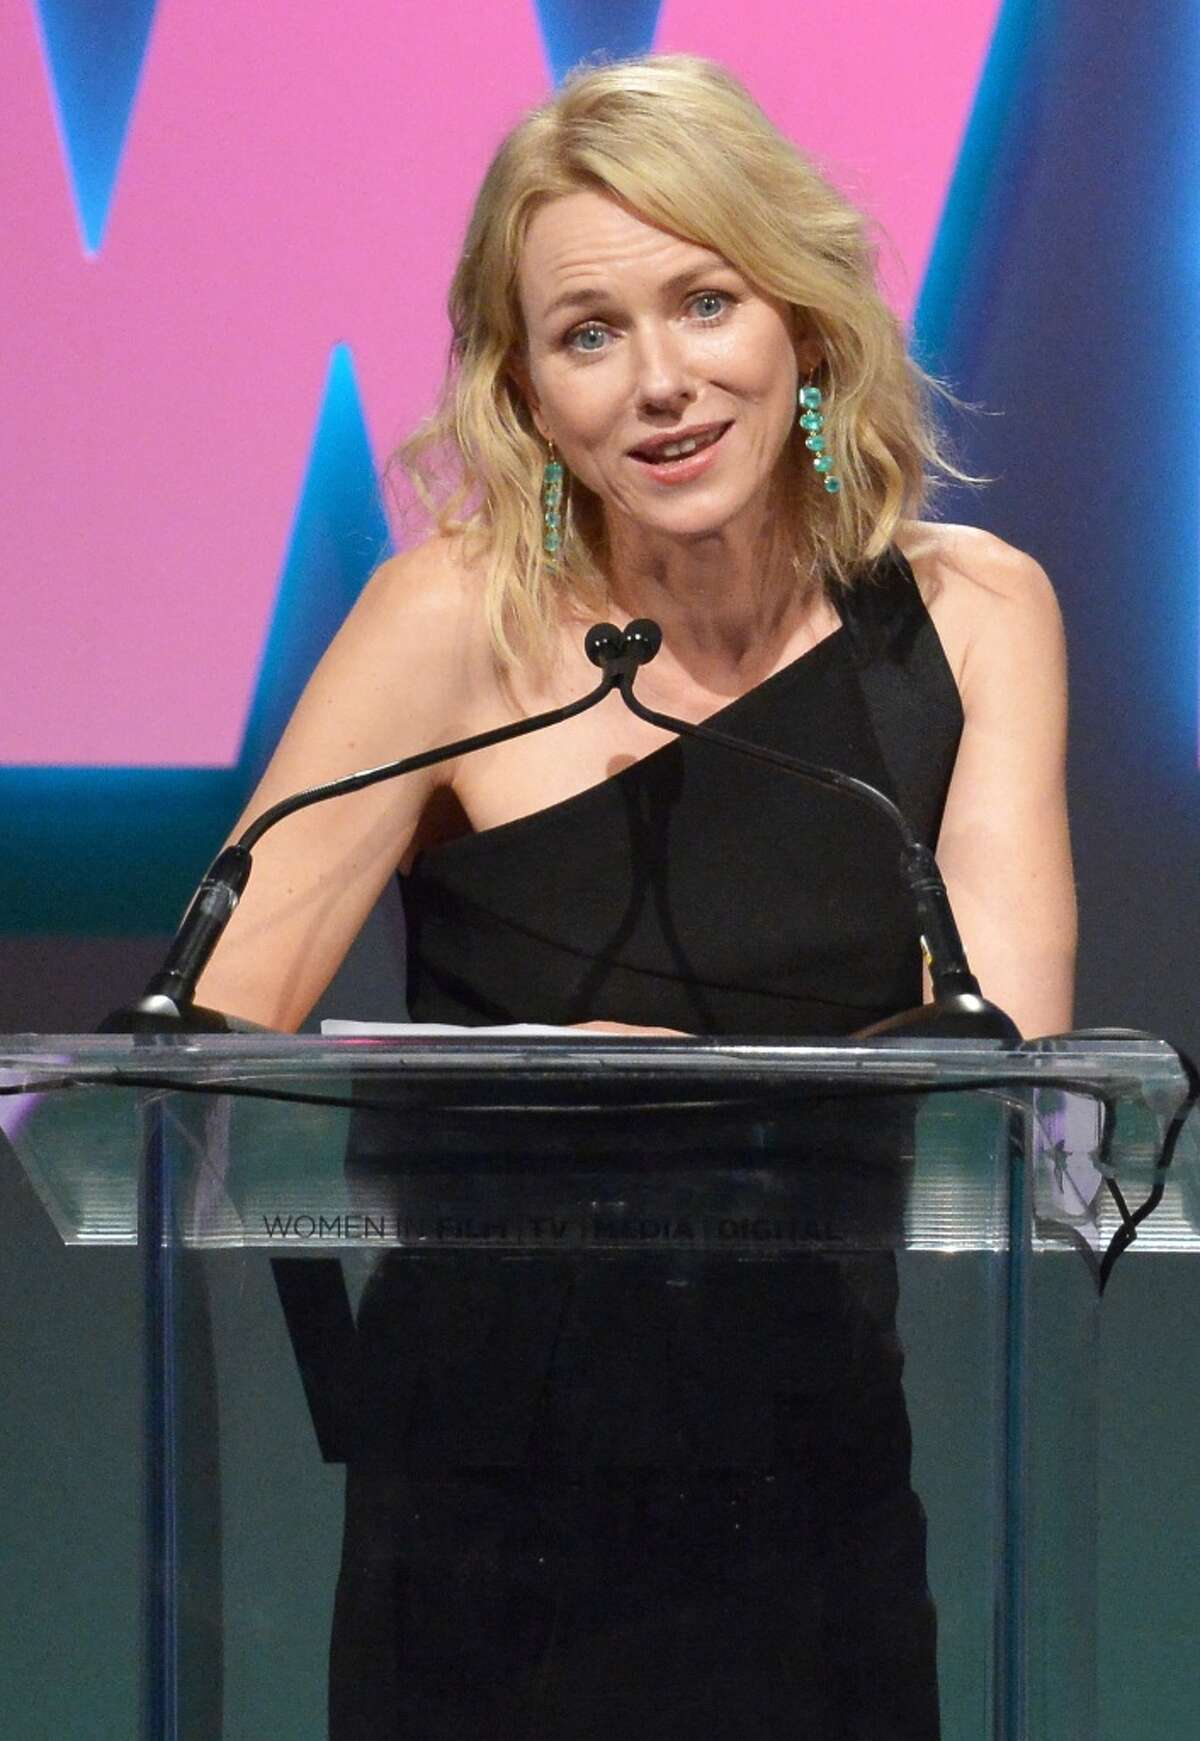 Actress Naomi Watts speaks onstage during the Women In Film 2015 Crystal + Lucy Awards Presented by Max Mara, BMW of North America, and Tiffany & Co. at the Hyatt Regency Century Plaza on June 16, 2015 in Century City, California. (Photo by Charley Gallay/Getty Images for Women In Film)